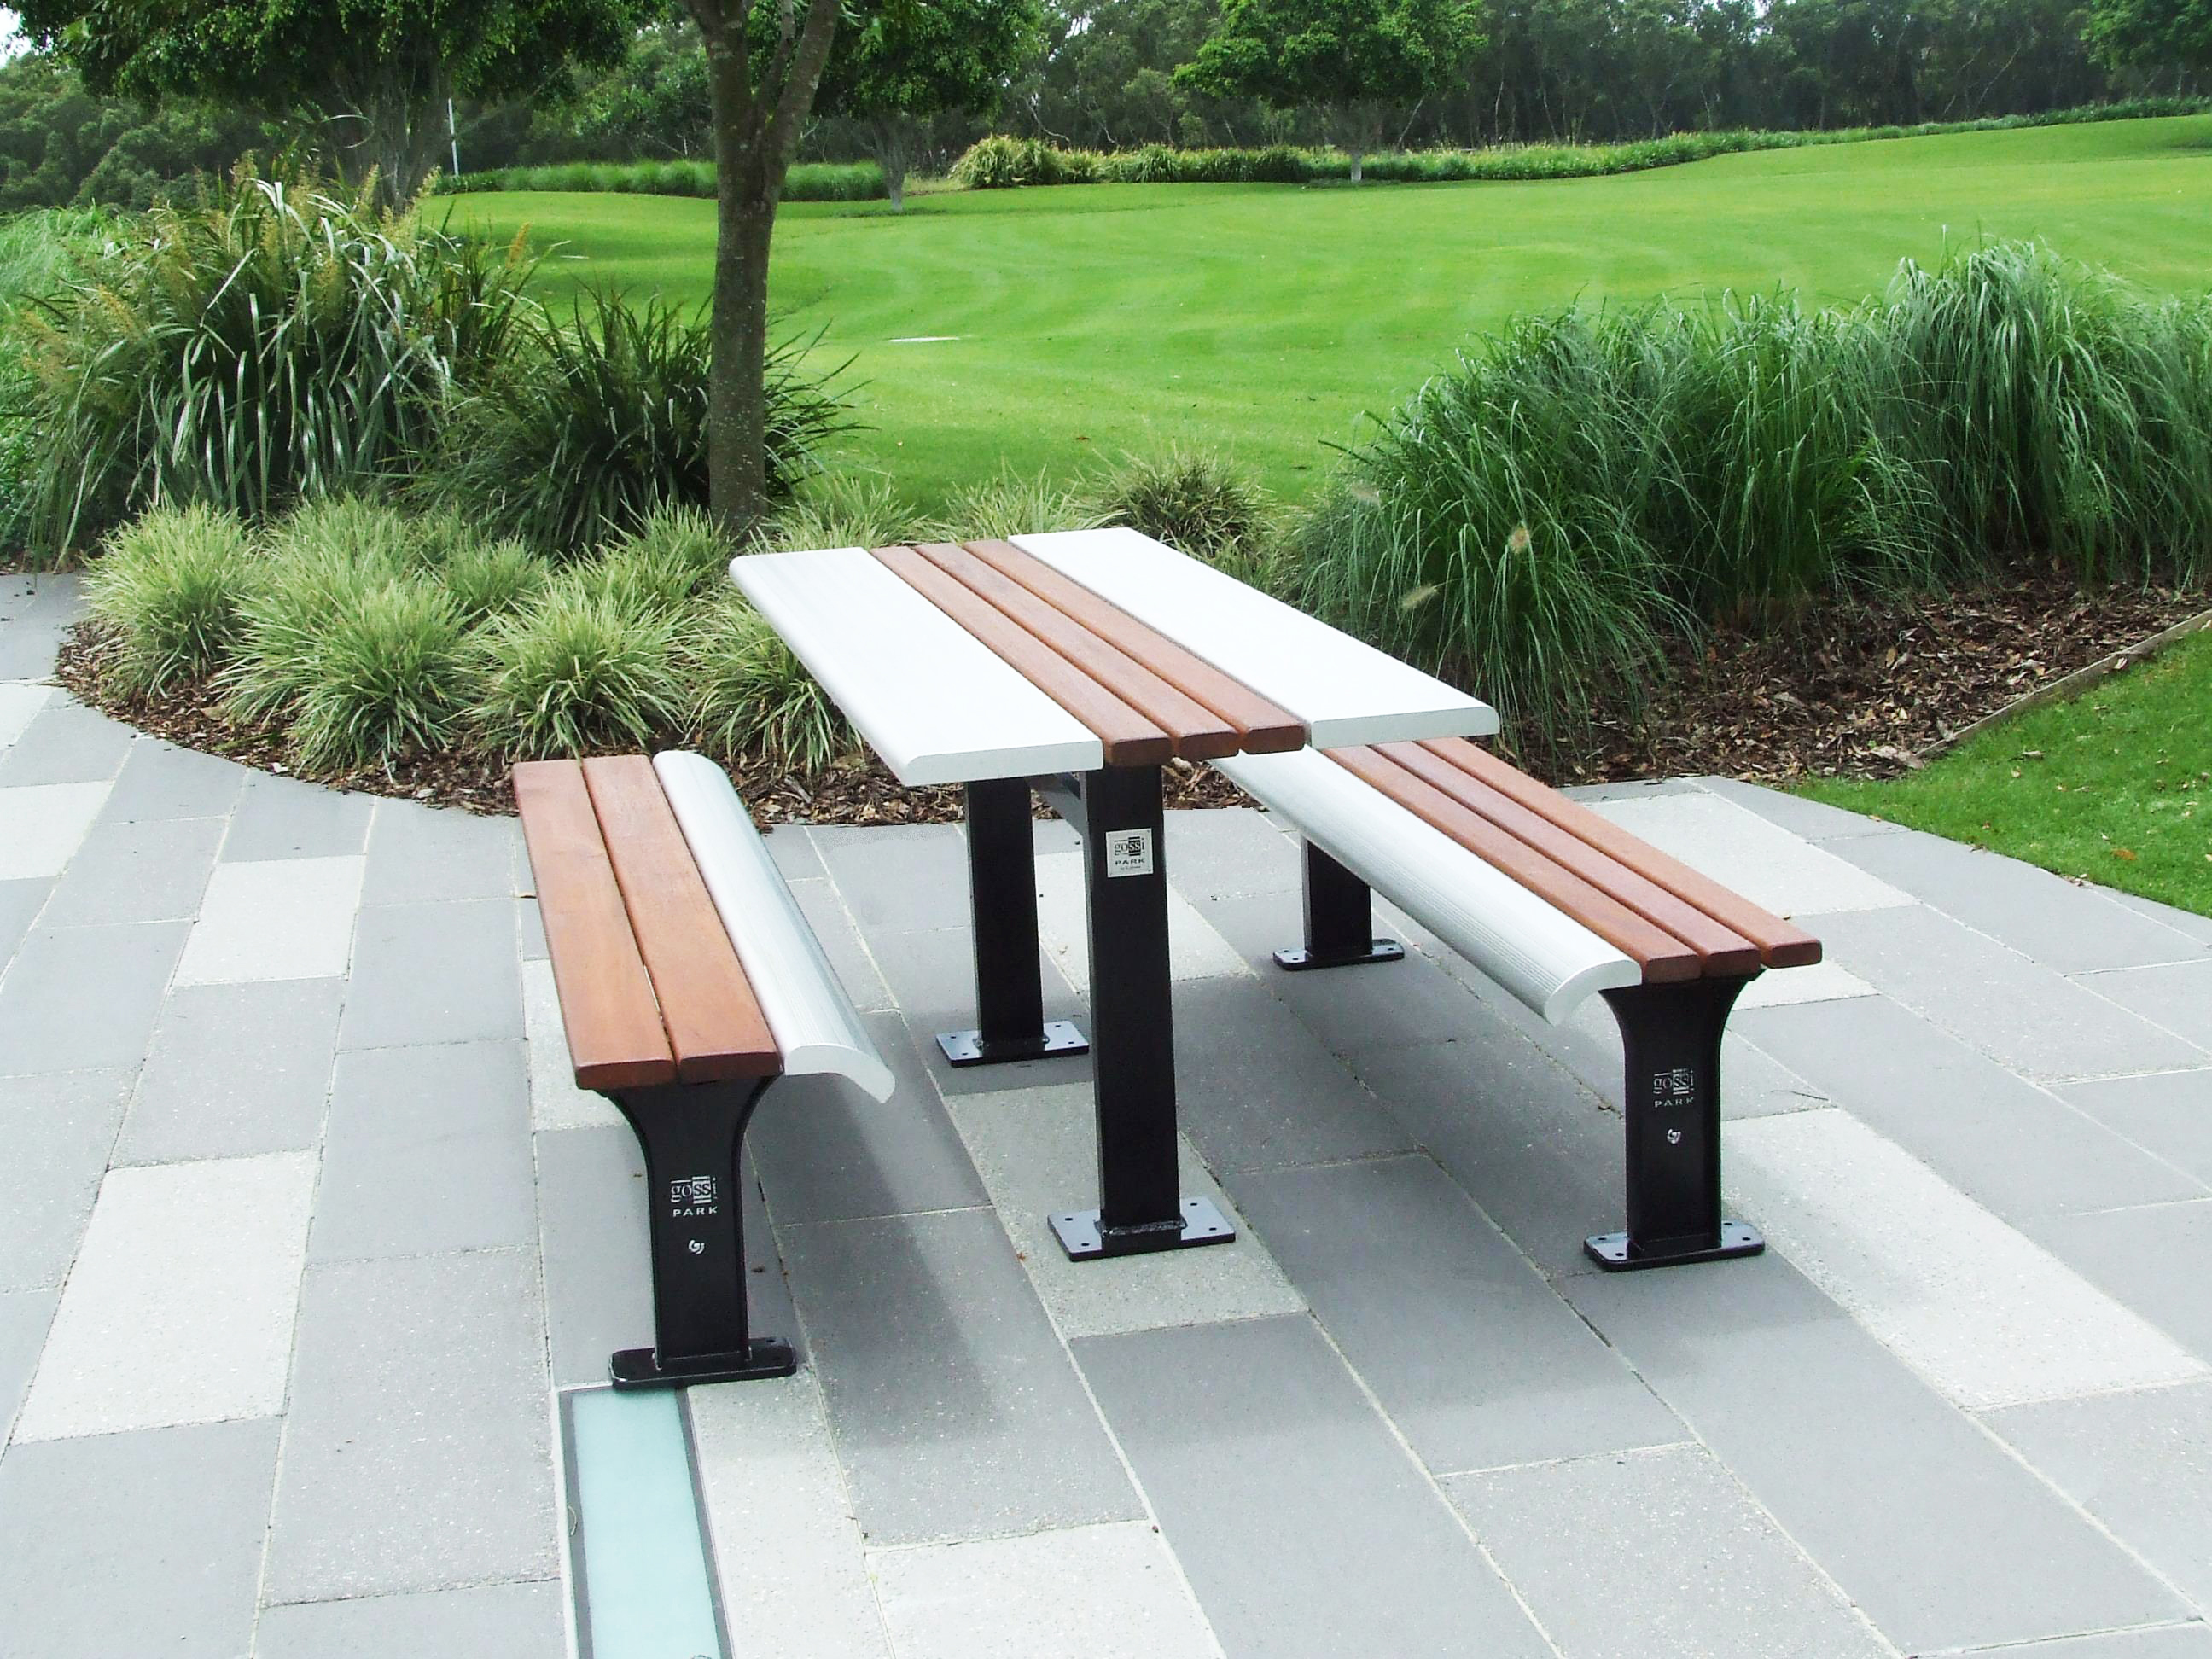 Public benches exteria street park outfitters for Landscape timber bench